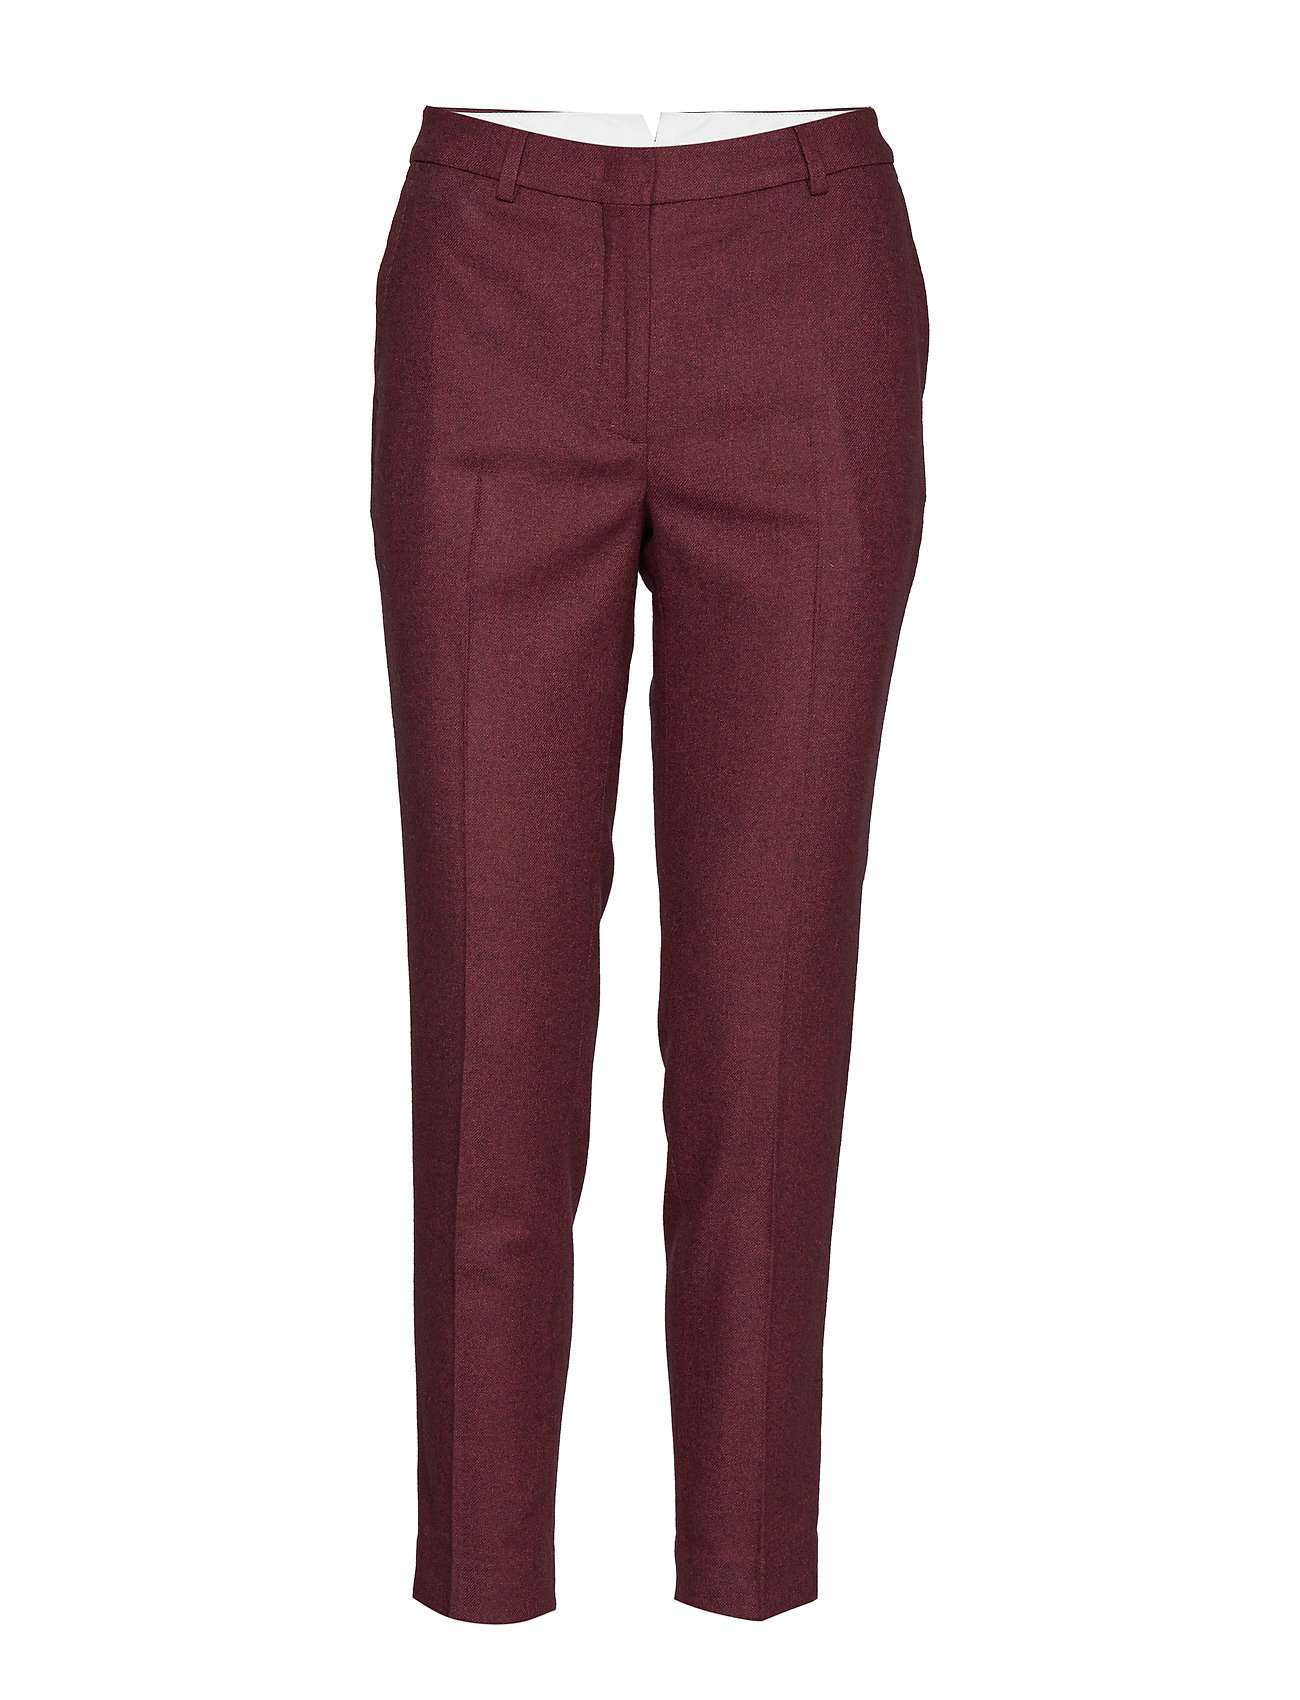 GANT D1. WASHABLE STR WOOL TAPERED PANT - MAHOGNY RED